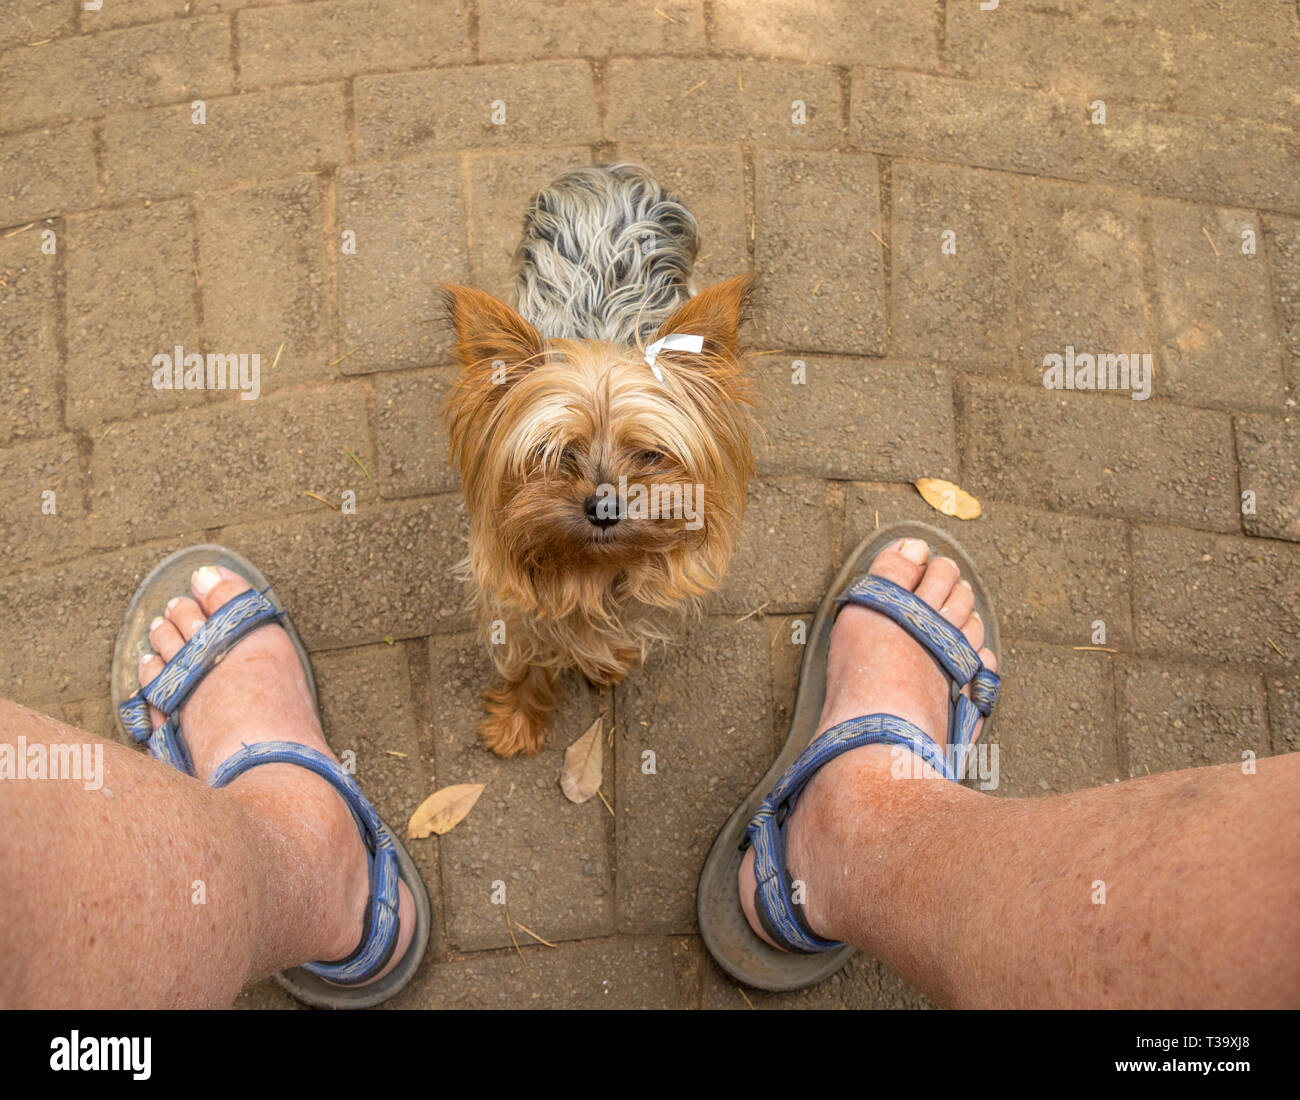 Small pet dog looking up at its owner begging to be picked up image with copy space in landscape format - Stock Image